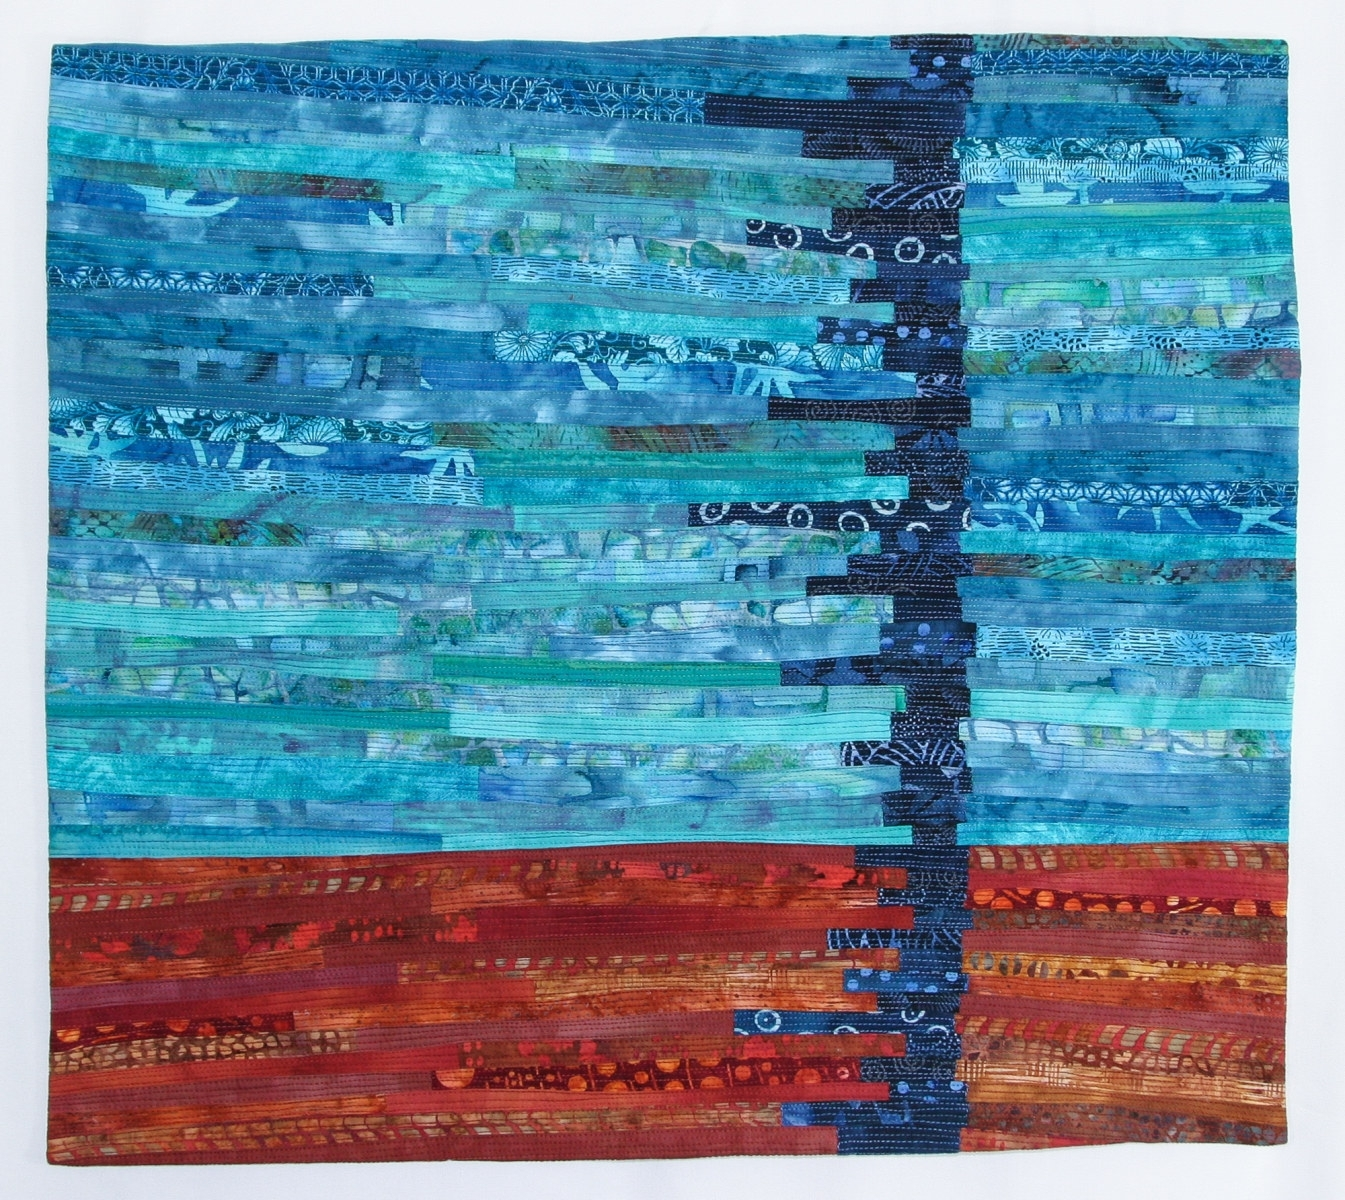 Tafa: The Textile And Fiber Art List | Mardell Rampton – Textile Intended For 2018 Abstract Textile Wall Art (View 13 of 15)